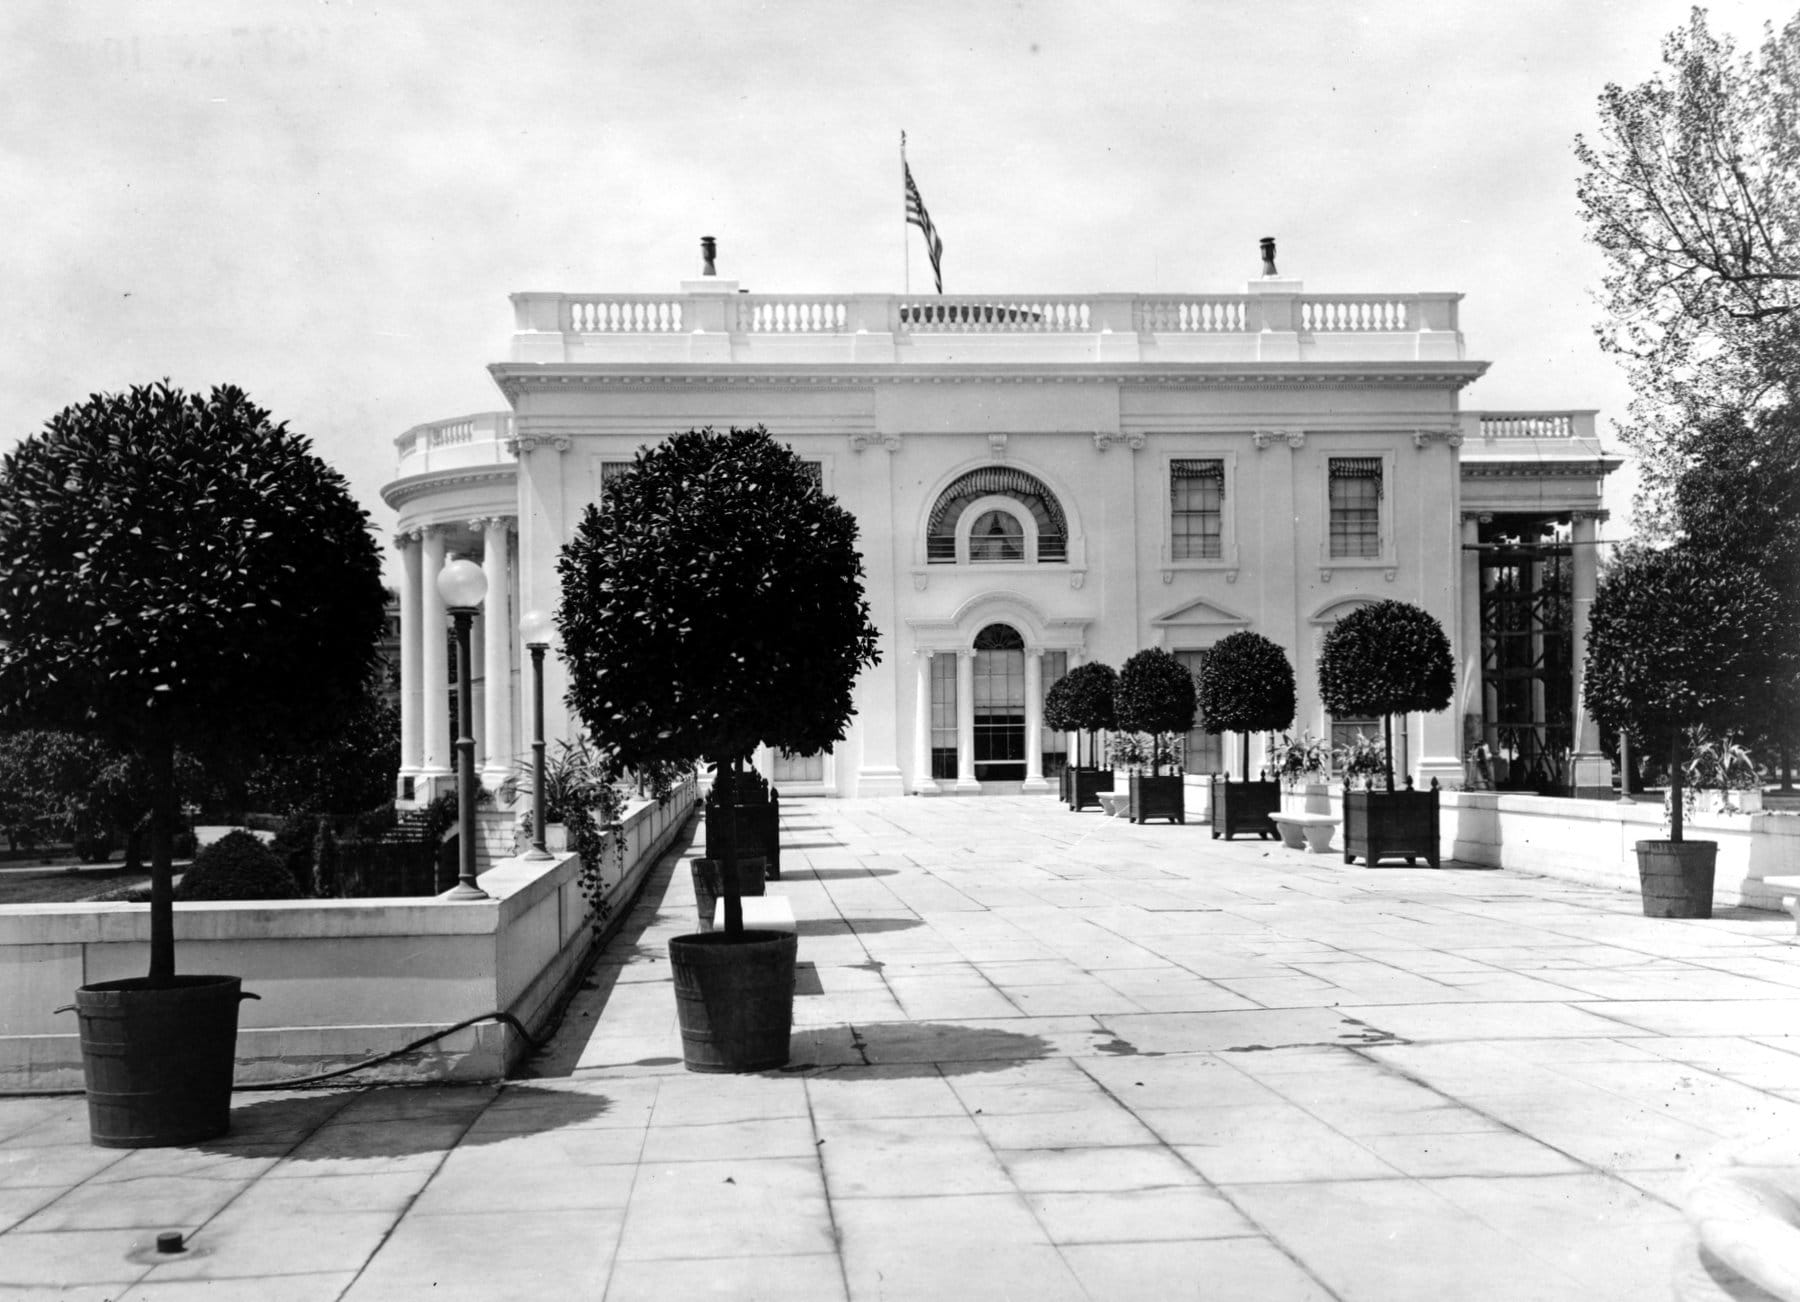 On the East Terrace of the White House